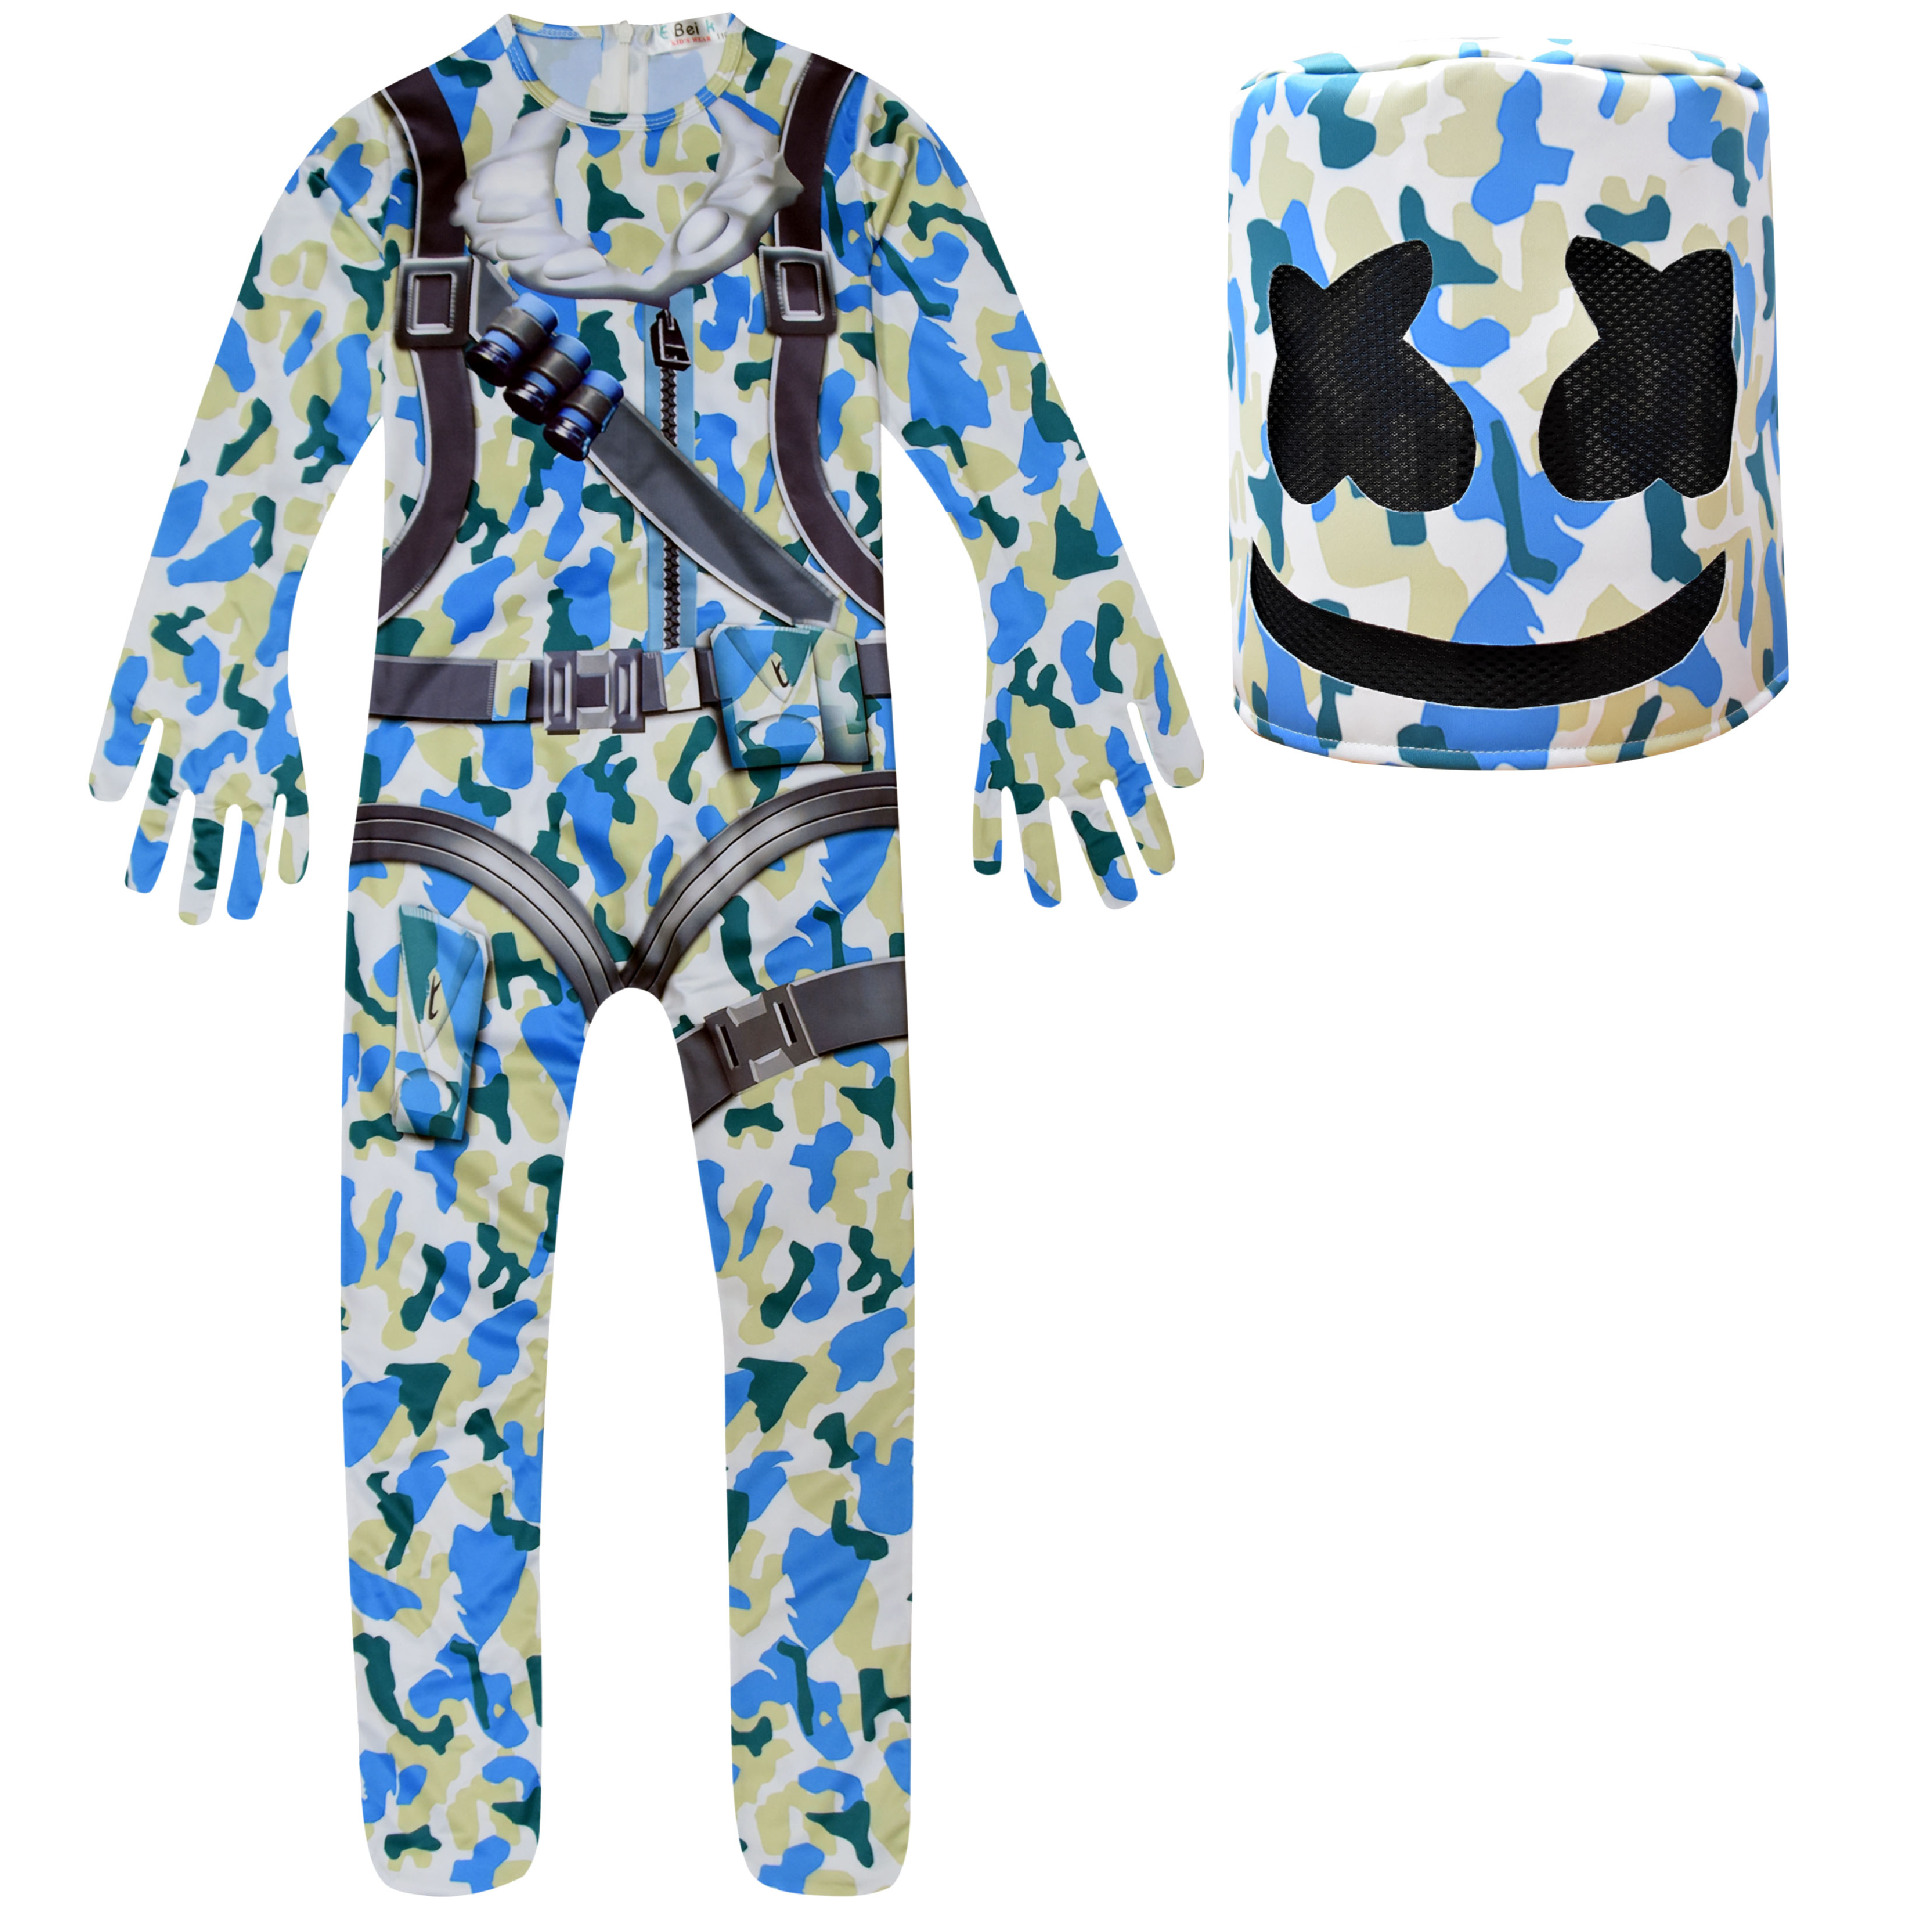 Christmas Halloween Costume Fortress Marshmallow DJ Styling Suit Siamese Performance Dress Up Suit Set